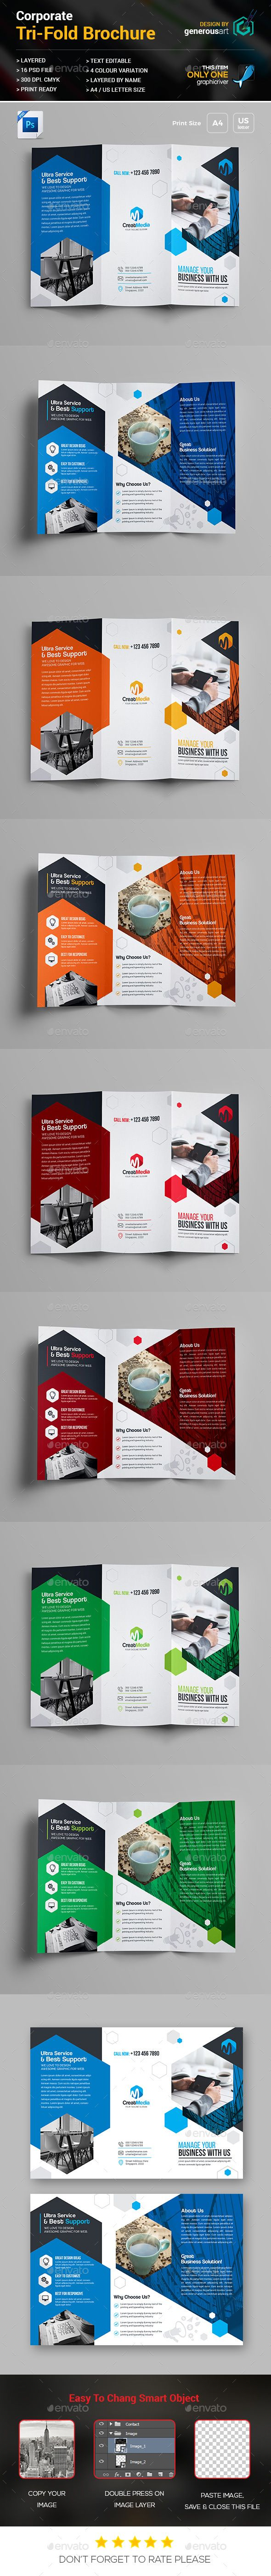 Business TriFold Brochure - Corporate Brochures Download here : https://graphicriver.net/item/business-trifold-brochure/19629207?s_rank=144&ref=Al-fatih